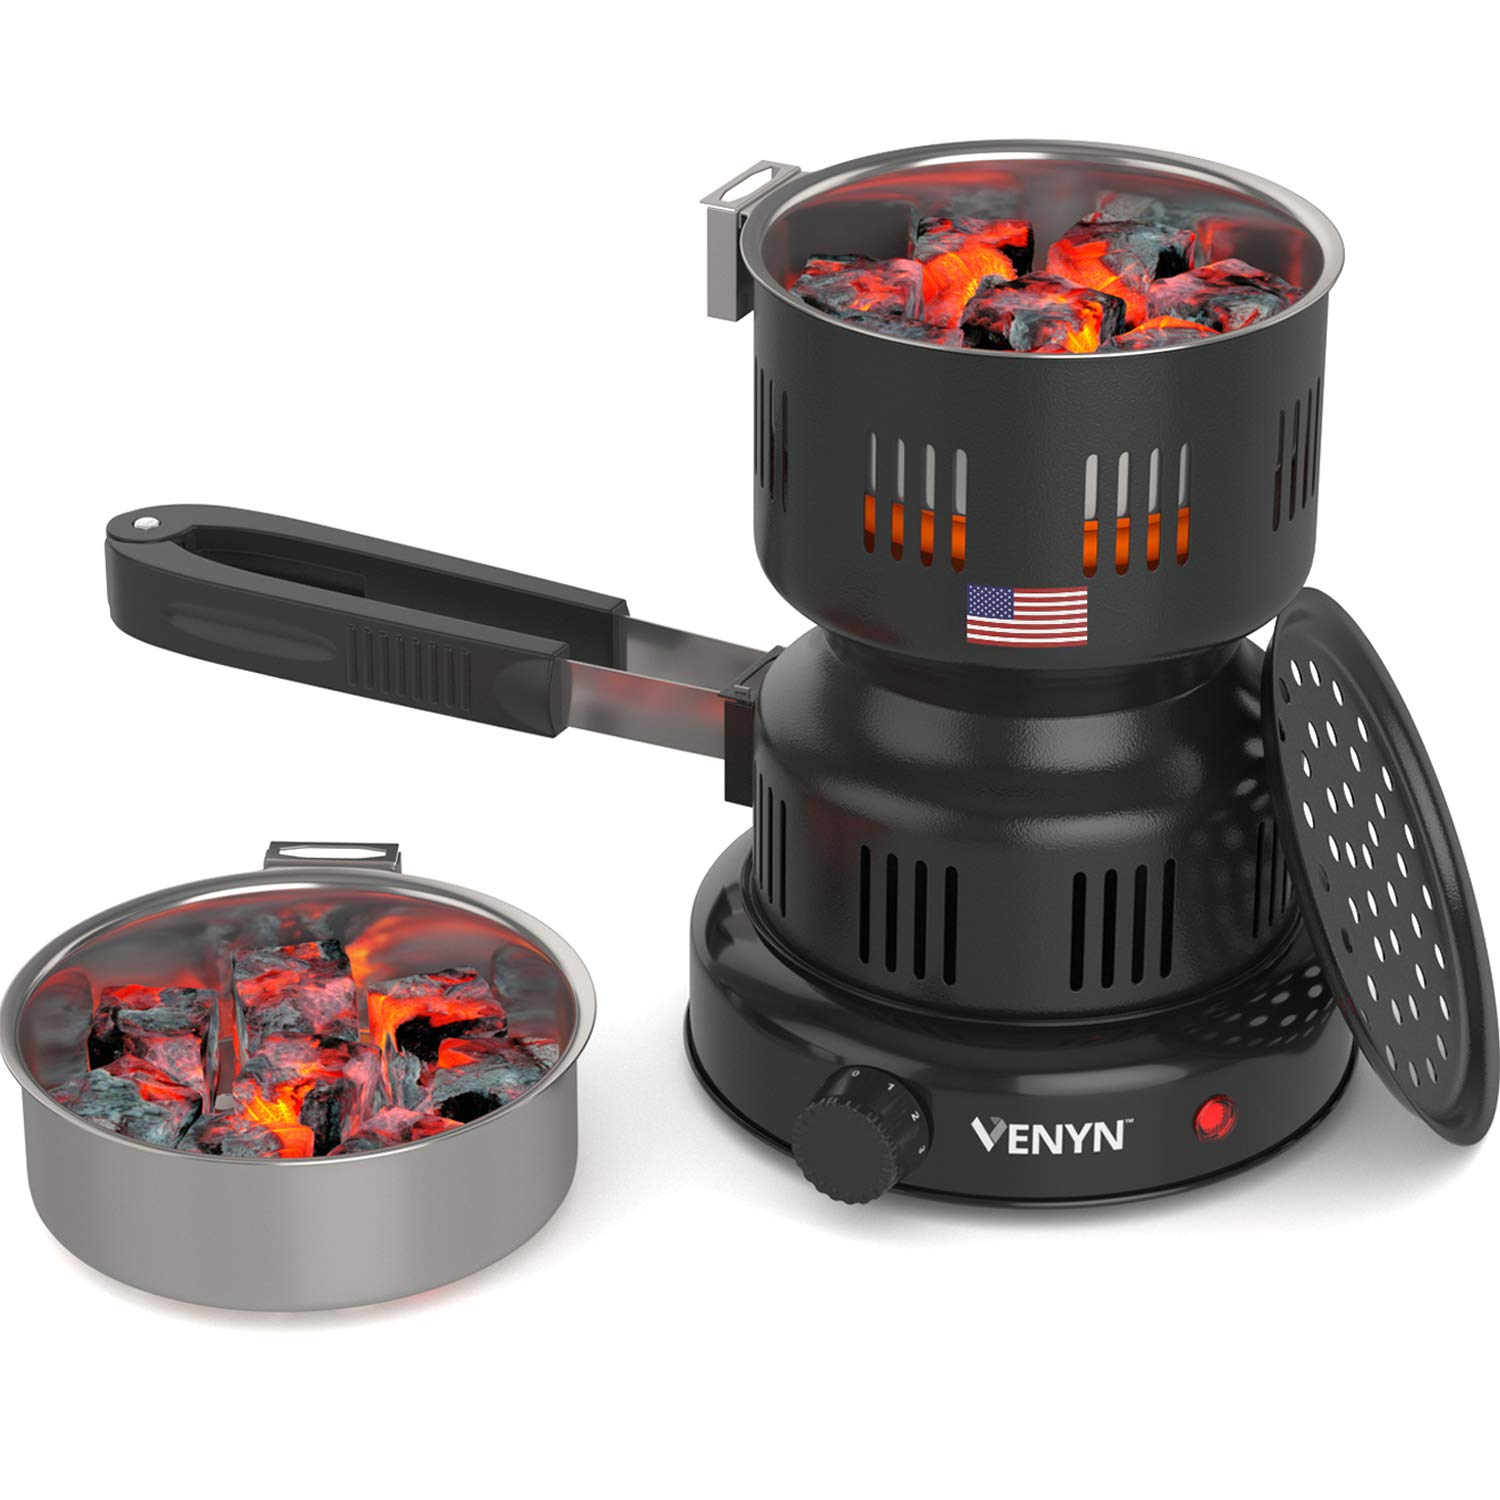 VENYN Multipurpose Charcoal Burner with Starter for Hookah, Shisha, Nargila, BBQ Fire - Porcelain Coating - Smart Heat Control - Includes Pair of Free Tongs by VENYN